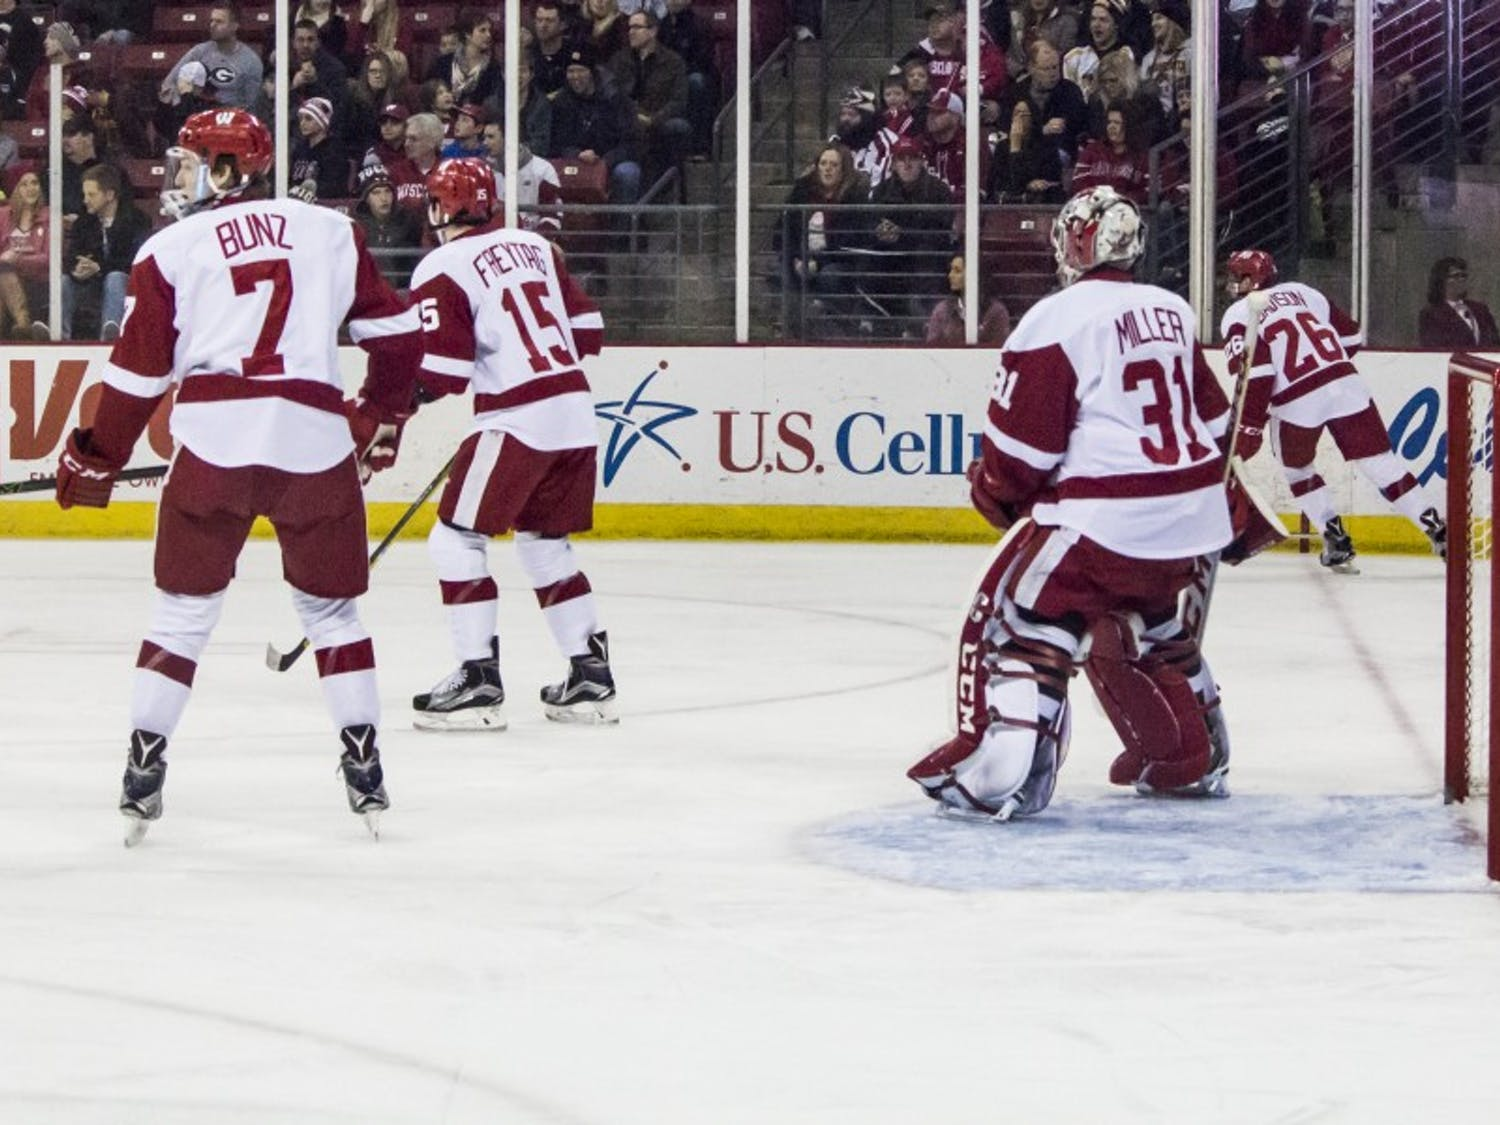 Wisconsin's men's hockey rebrand is aimed at drawing interest back to the ice at the Kohl Center.